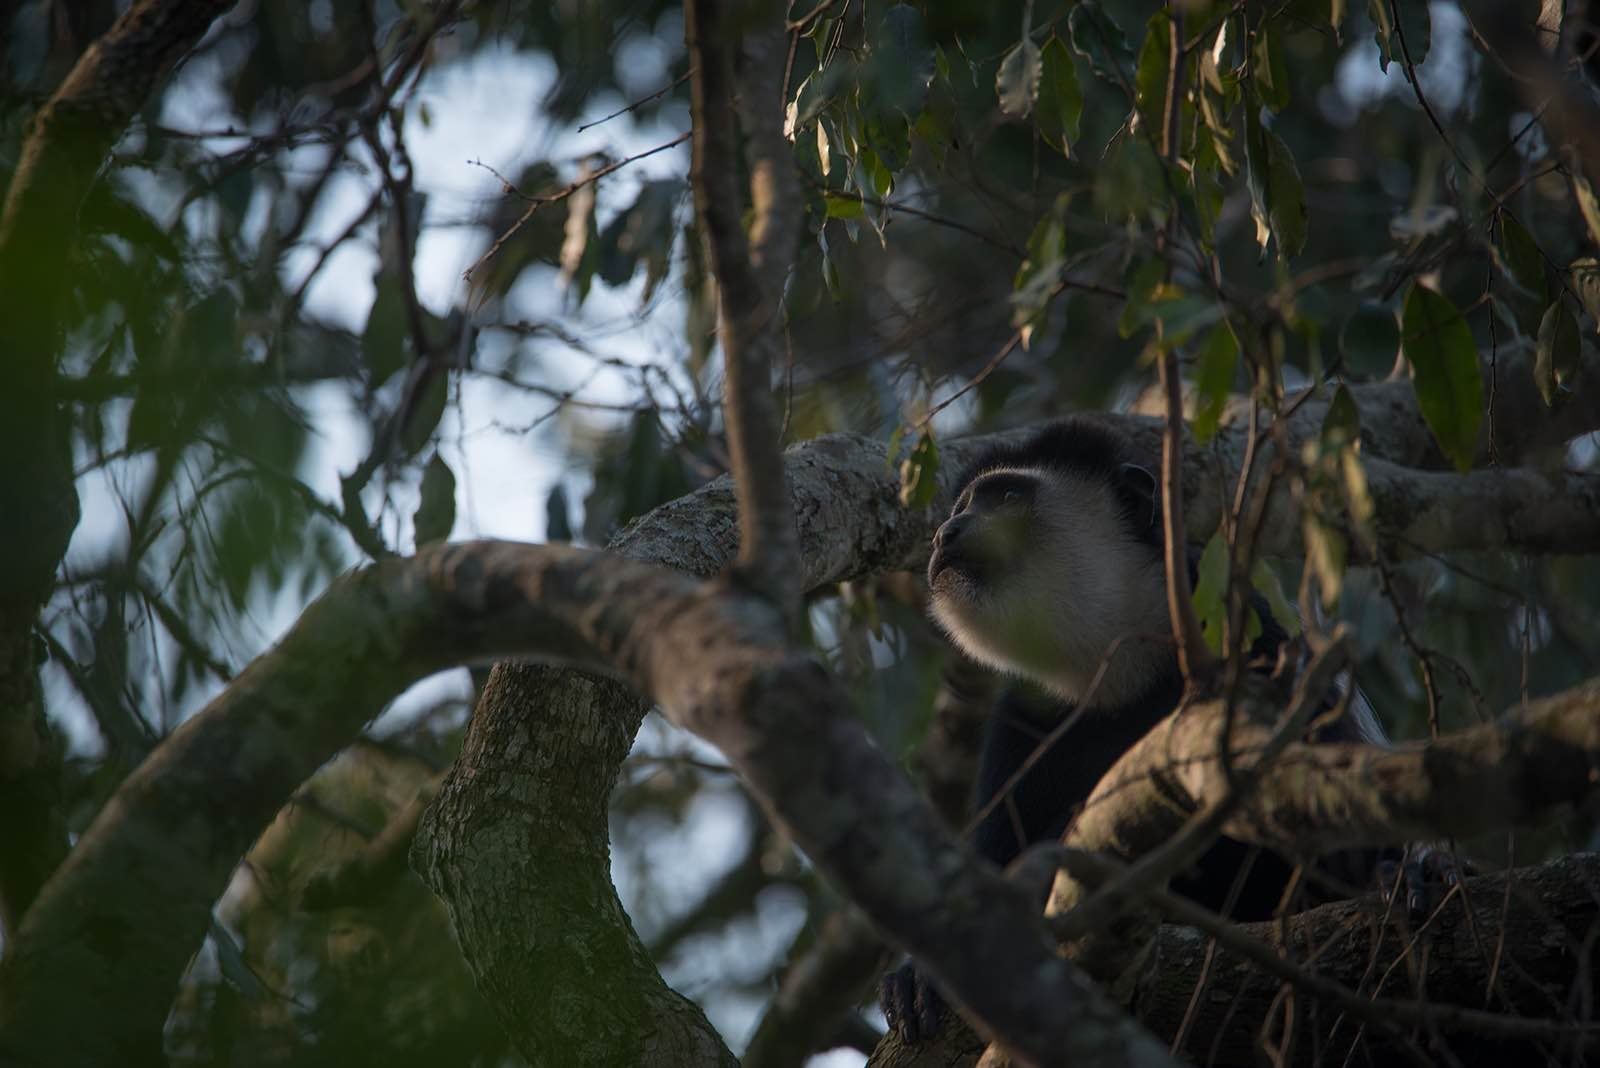 Black and white colobus monkey in Queen Elizabeth National Park